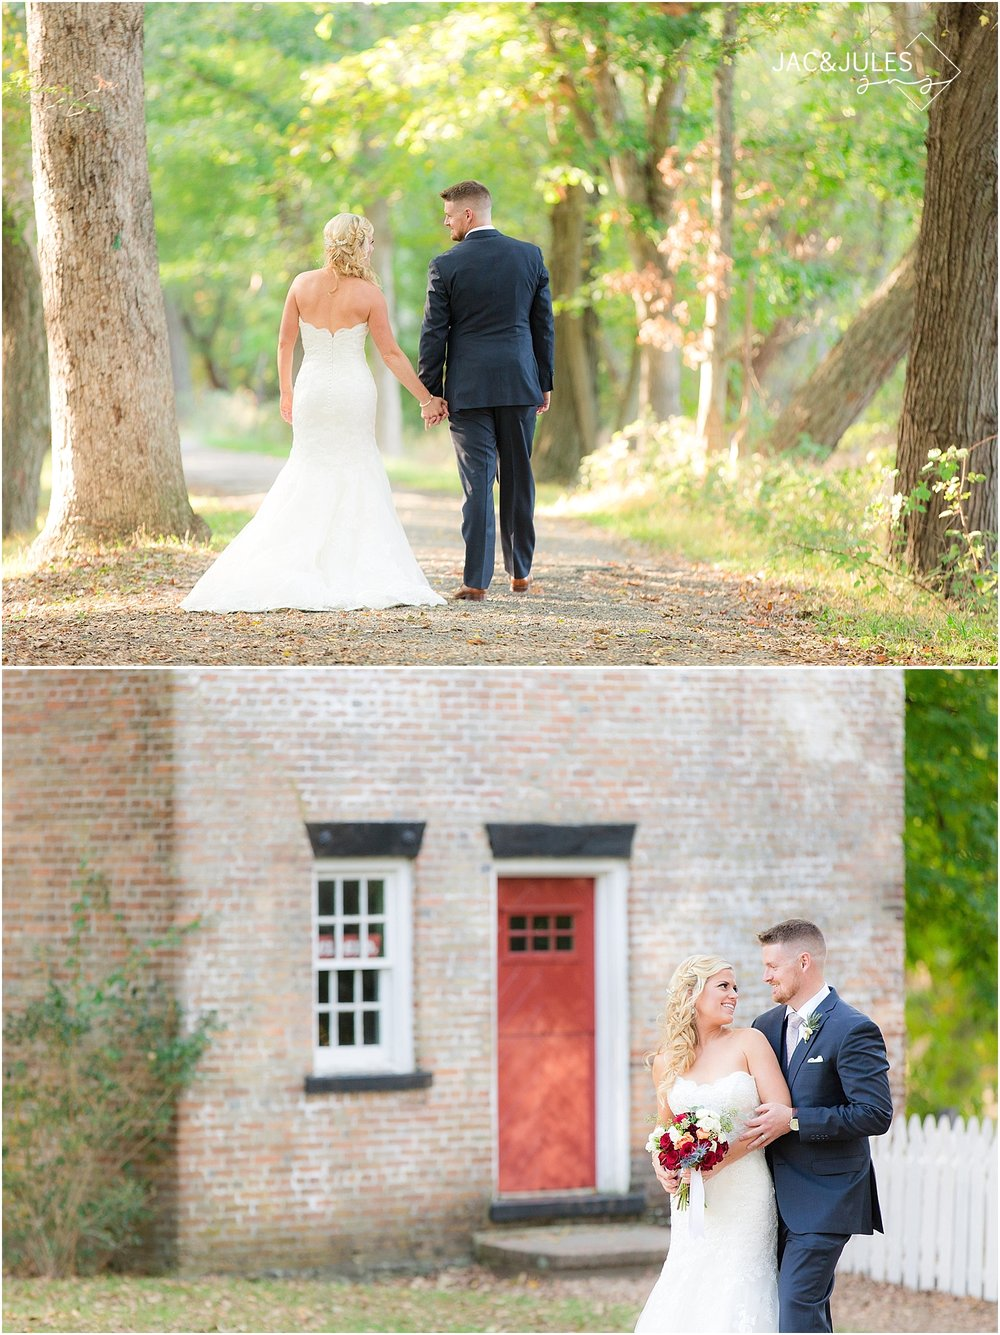 jacnjules photograph bride and groom for their wedding at Allaire State Park, NJ using natural light